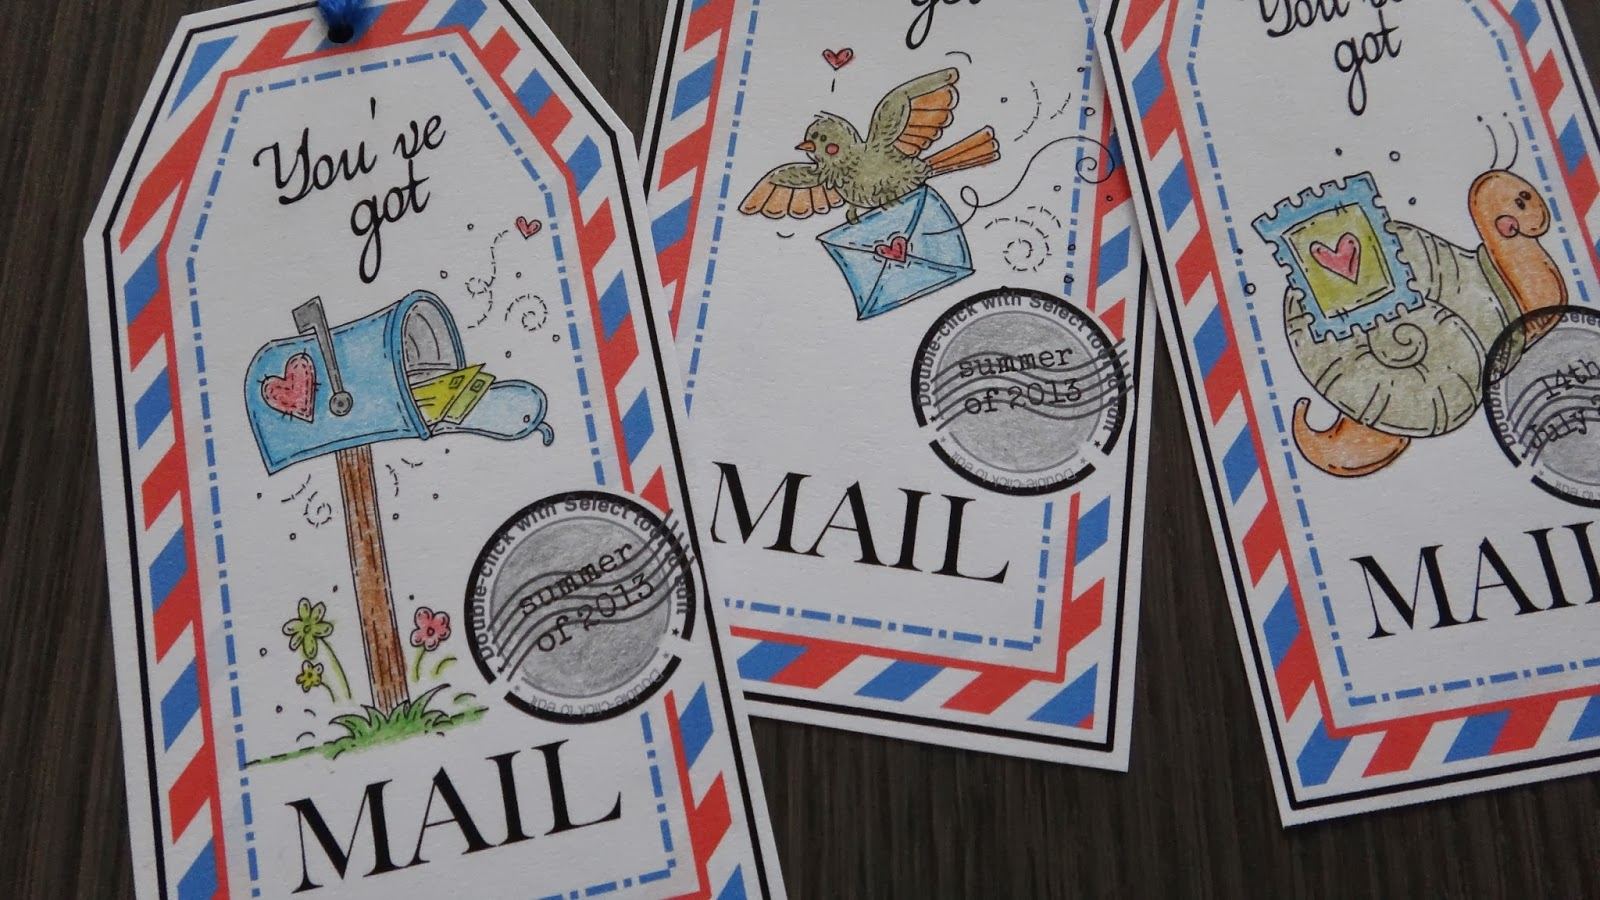 snail mail tags and mail art